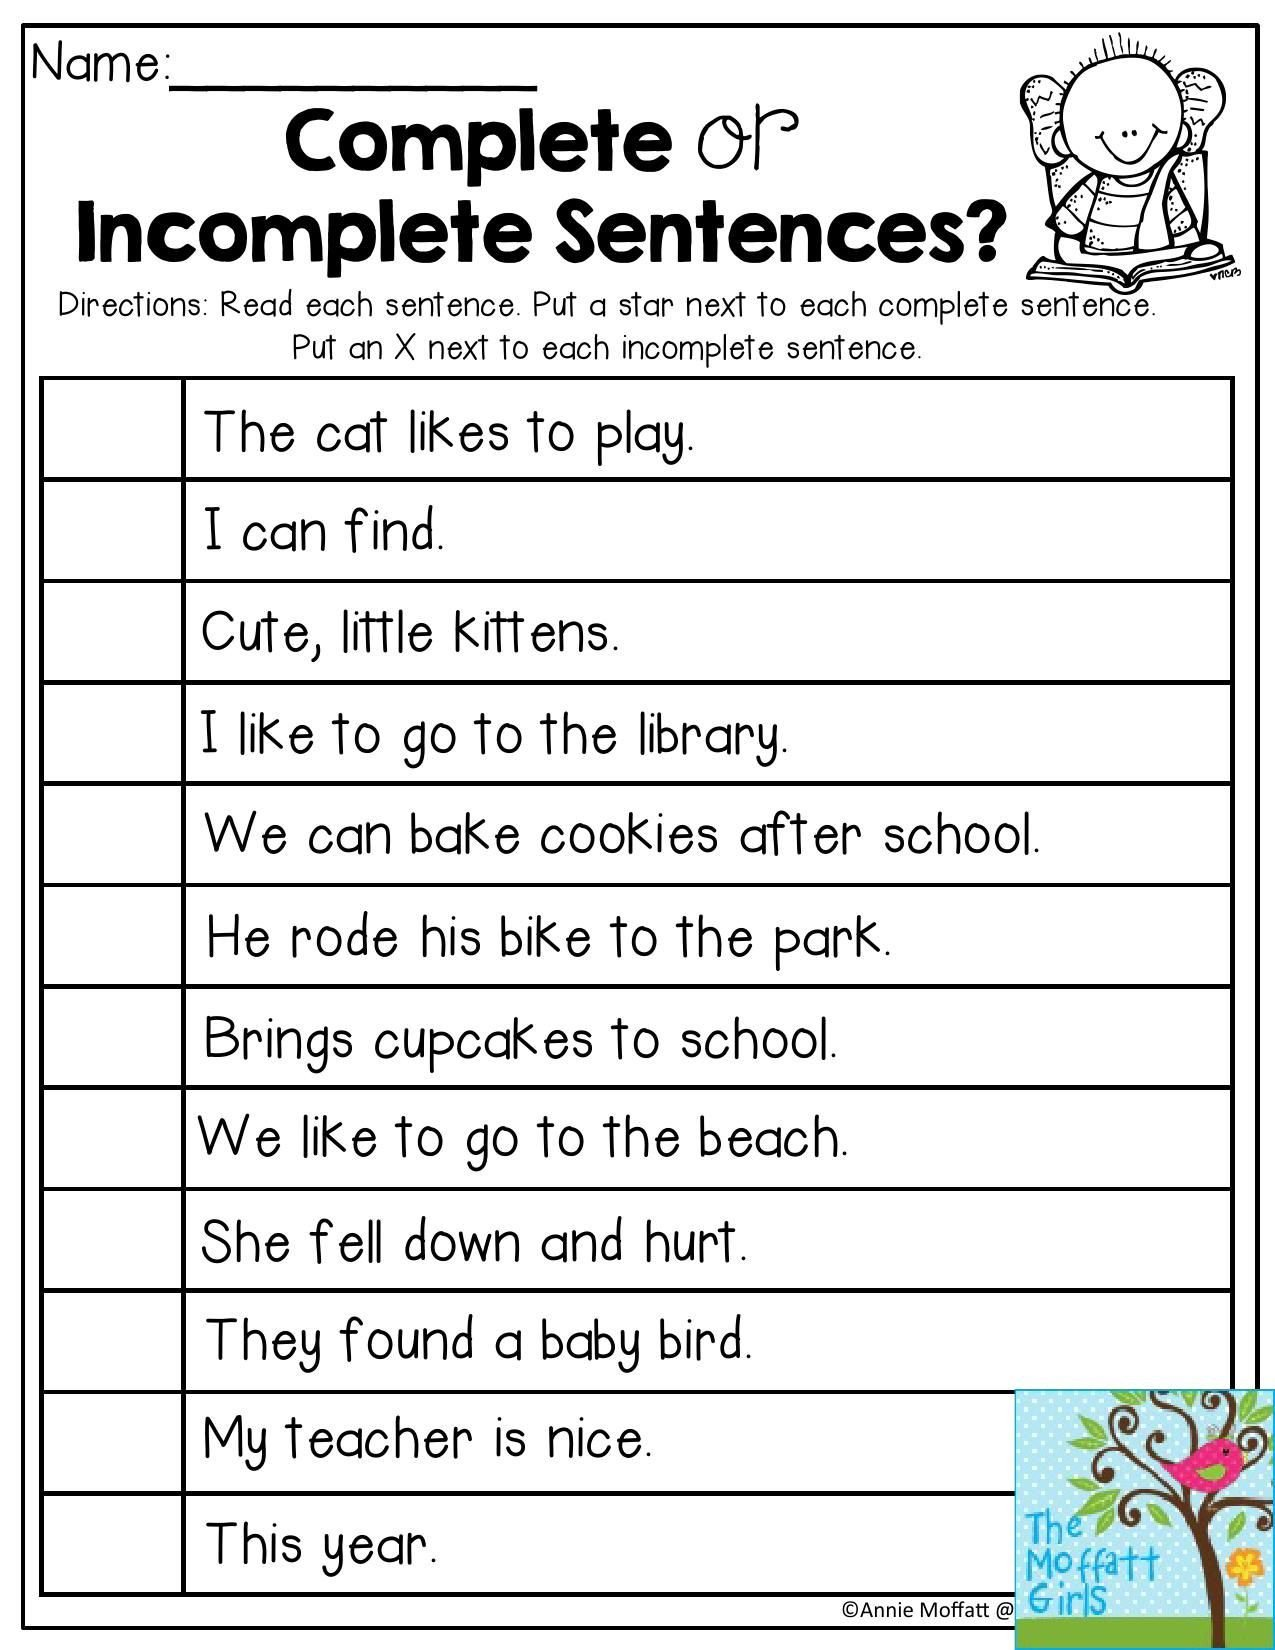 Complete Sentences Worksheet 1st Grade Plete or In Plete Sentences Read Each Sentence and